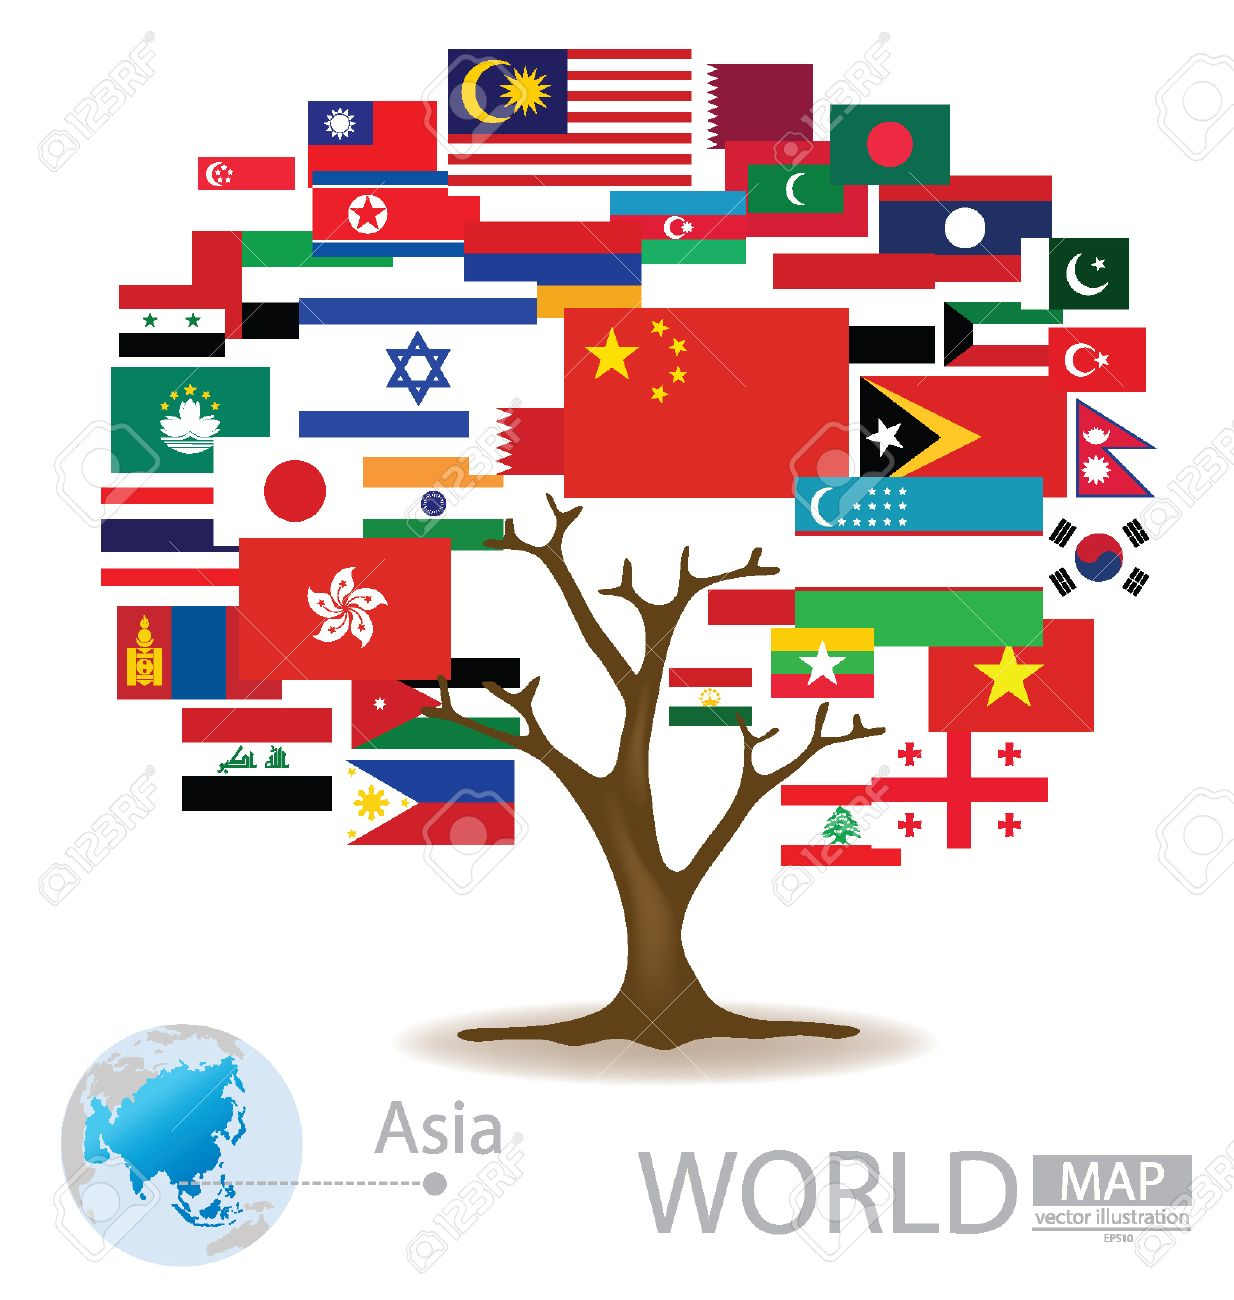 Tree design countries in asia flag world map vector illustration tree design countries in asia flag world map vector illustration stock vector gumiabroncs Images